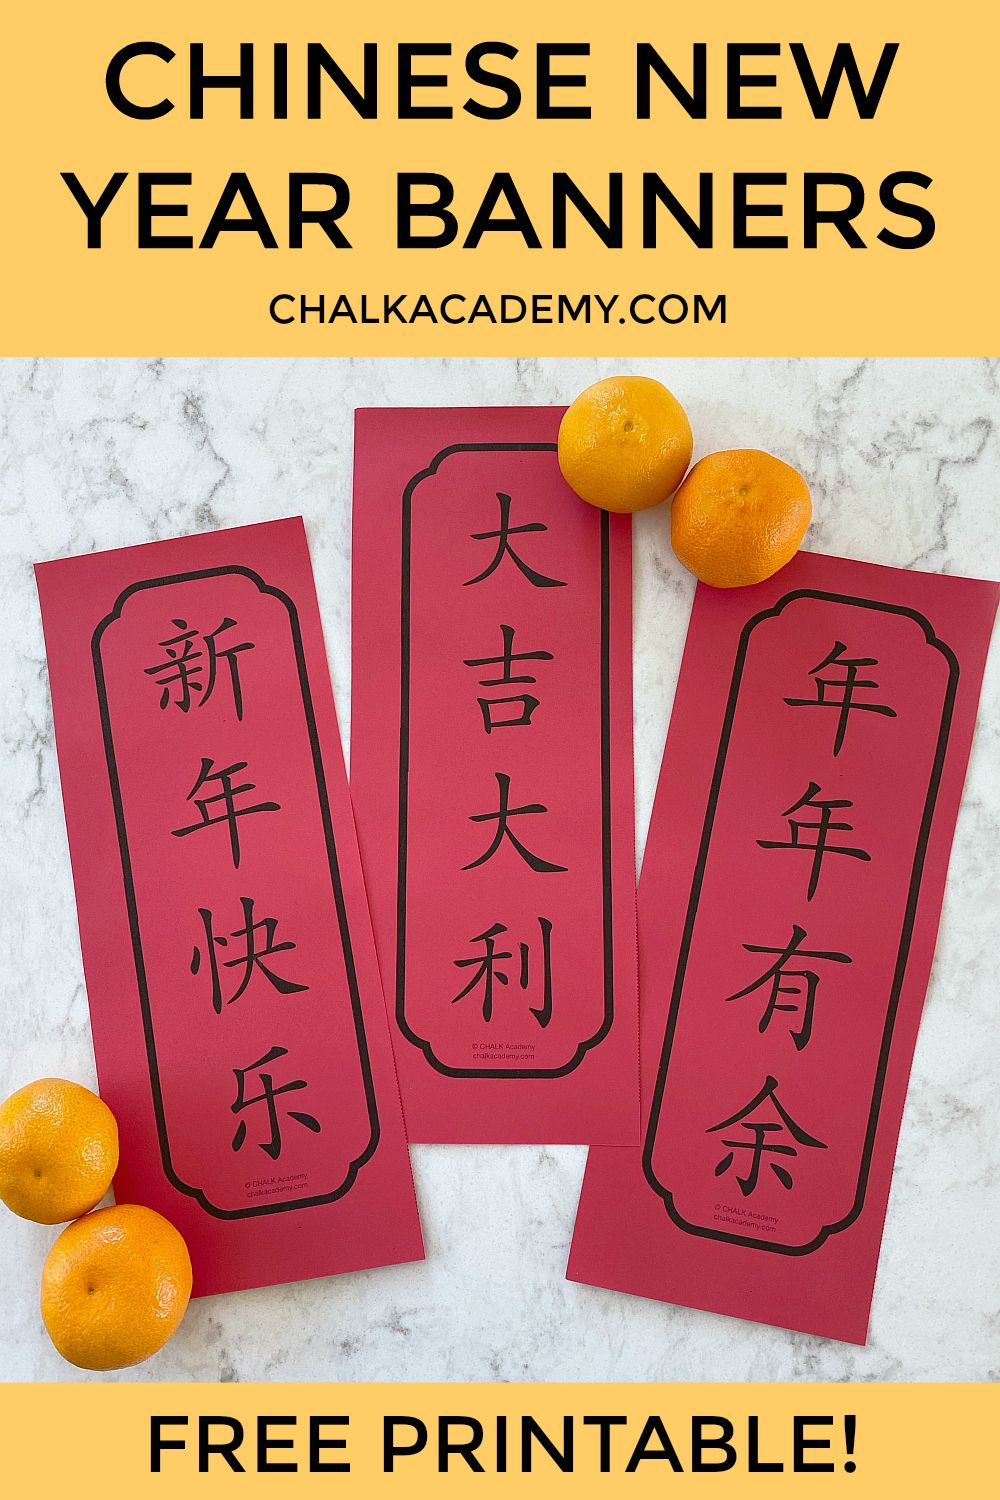 Chinese New Year Banners Simplified and Traditional